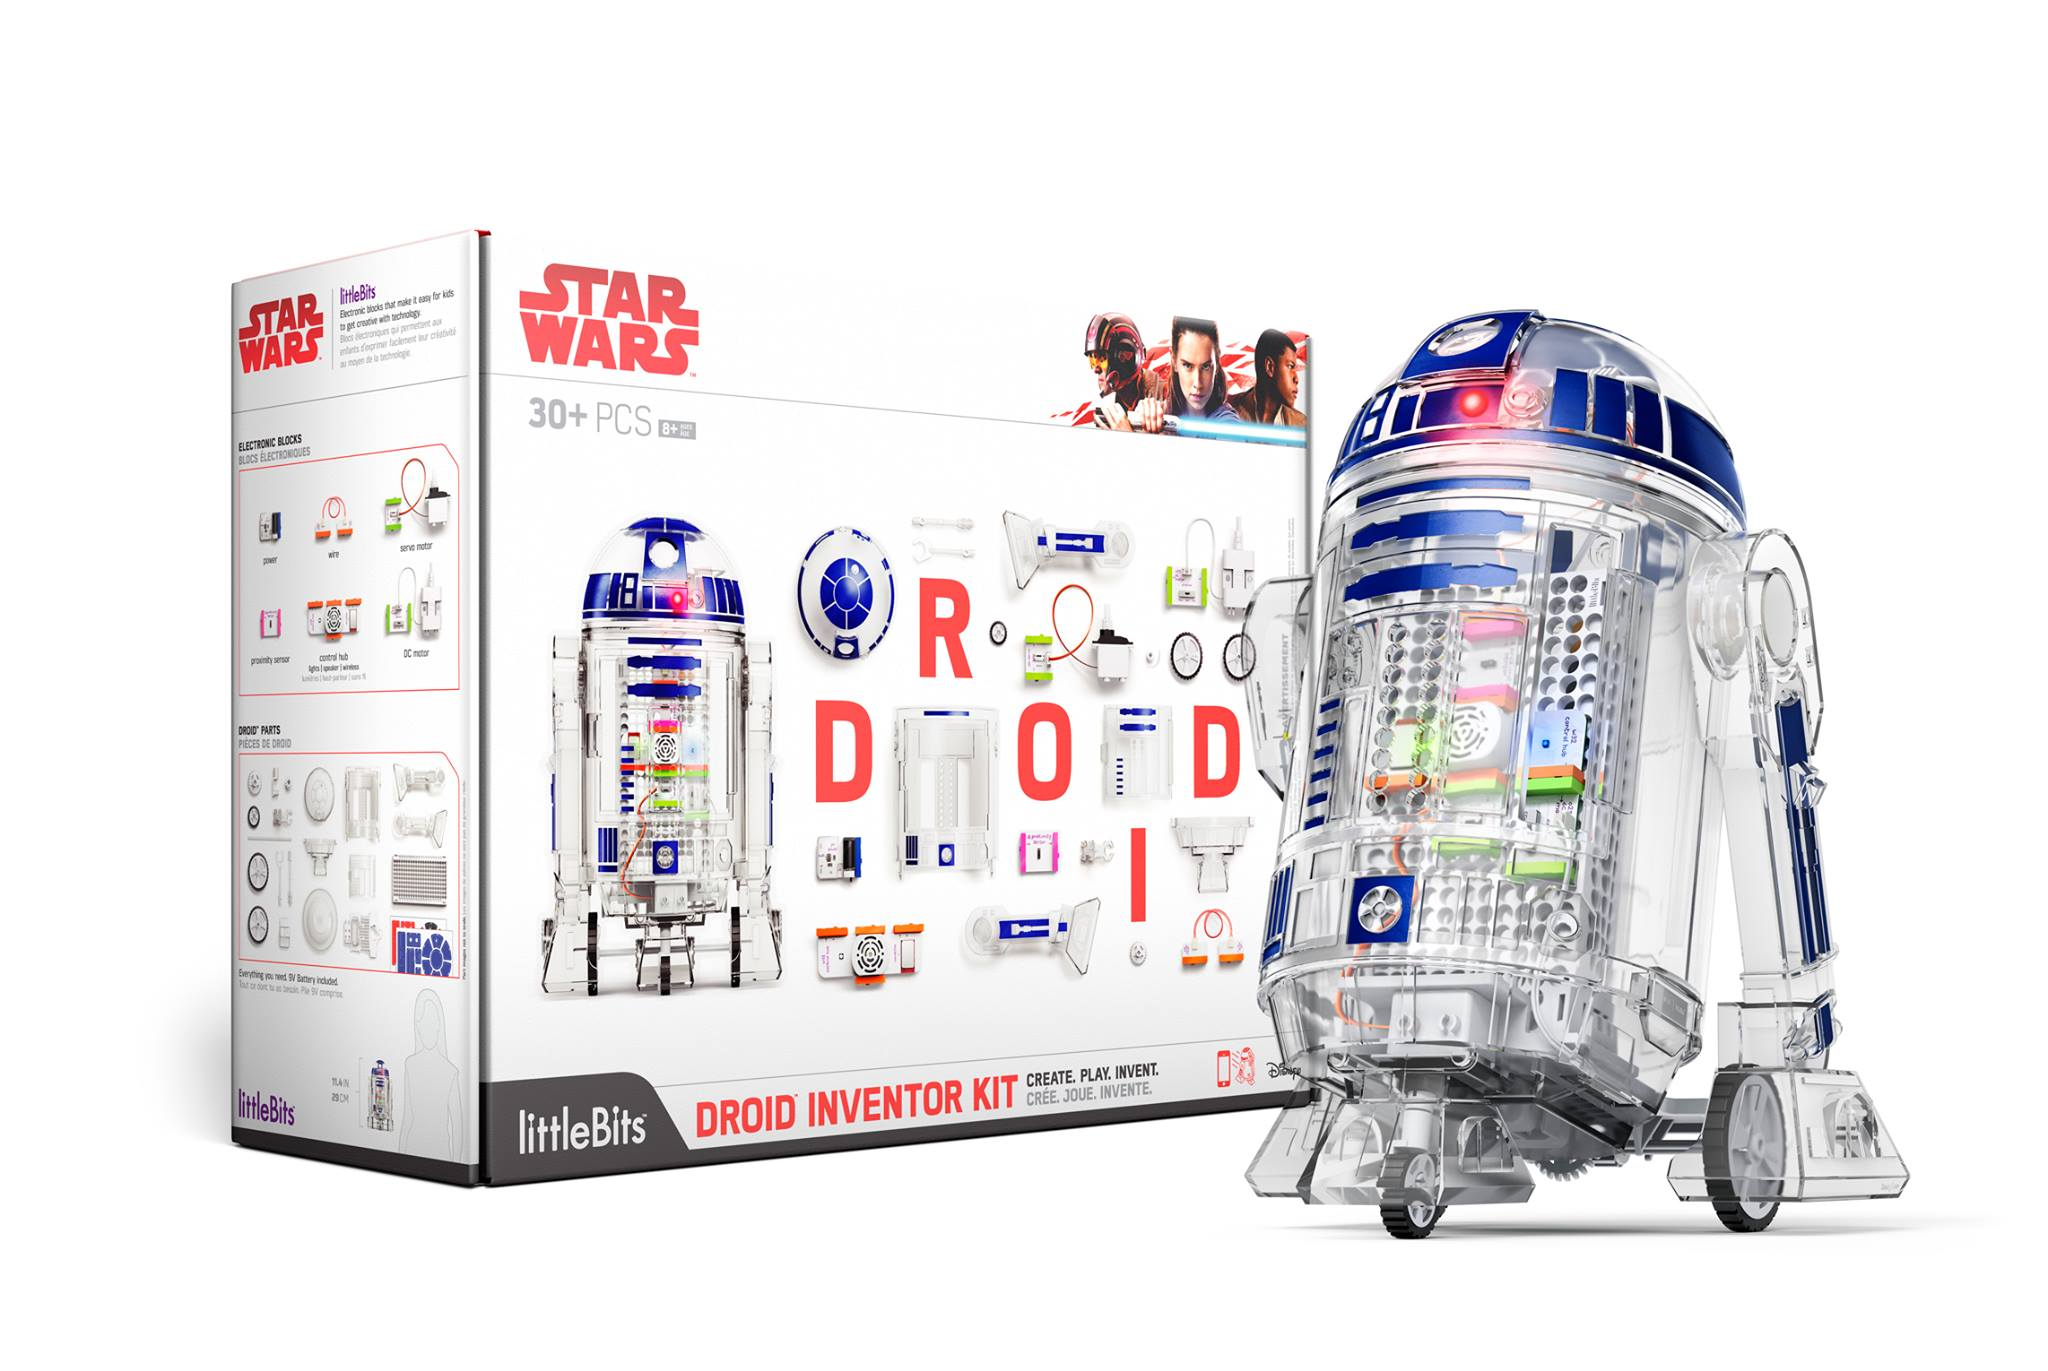 littleBits-star-wars-droid